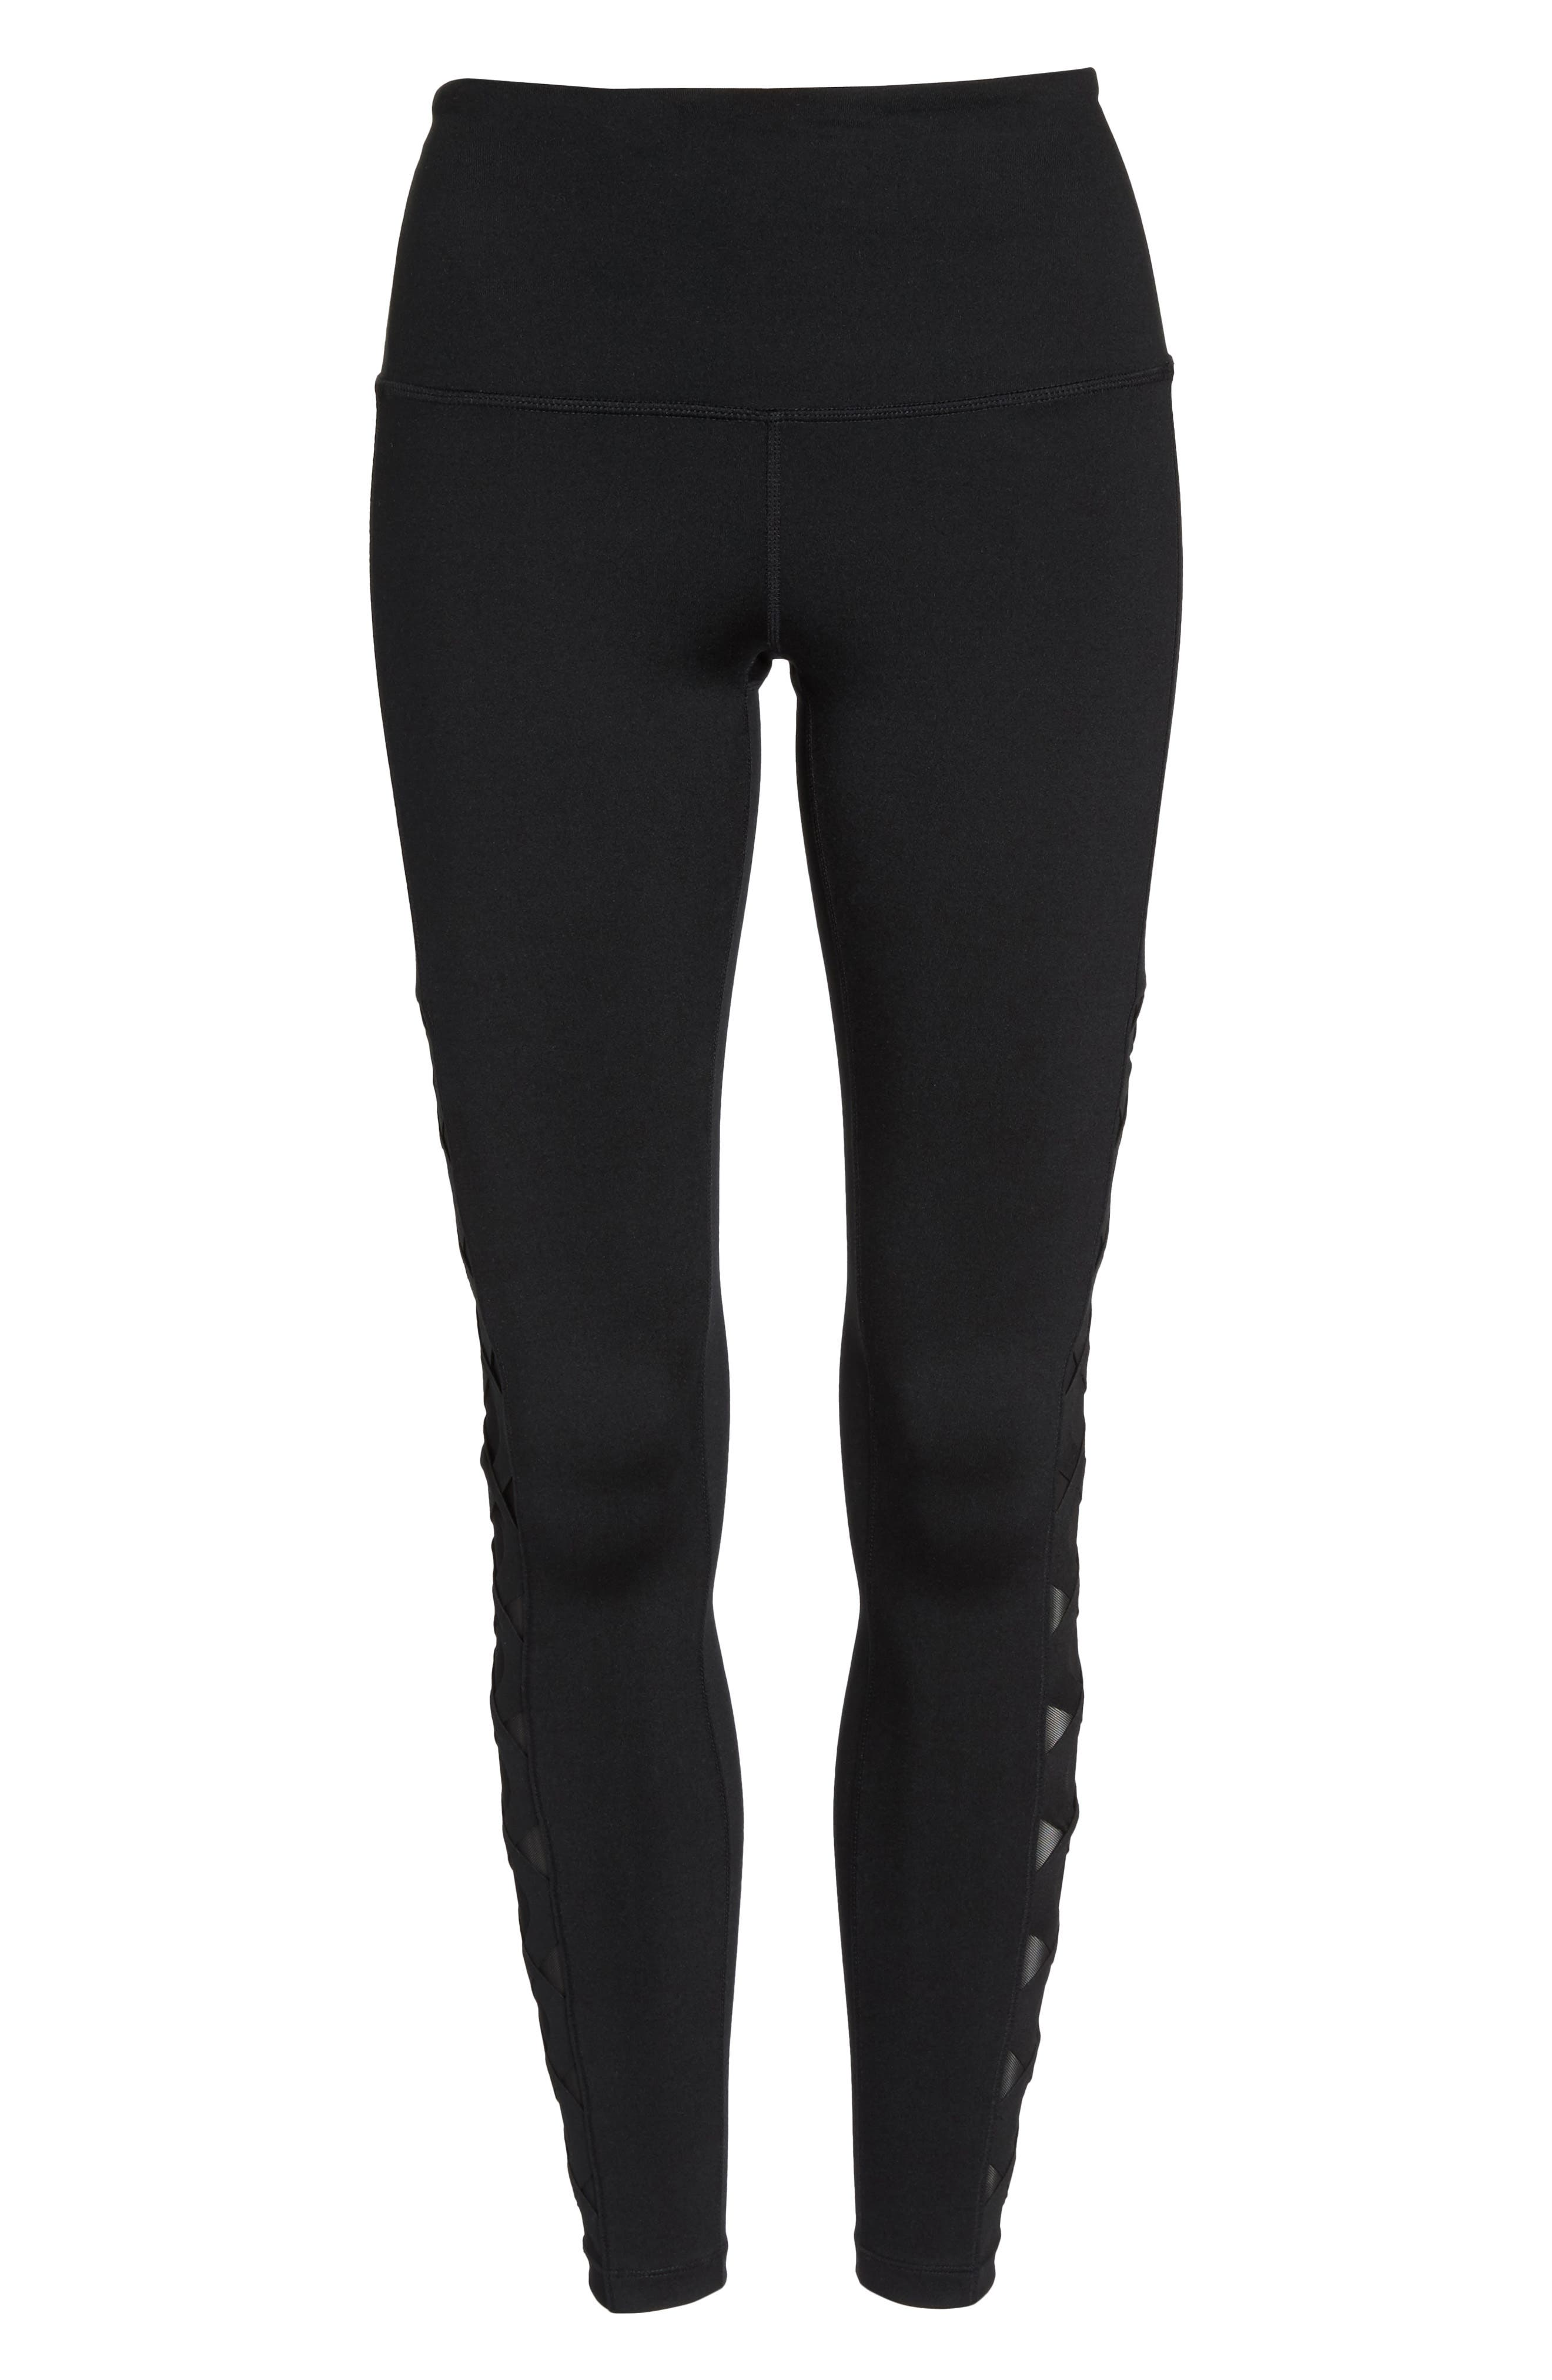 Laser Cut High Waist Leggings,                             Alternate thumbnail 7, color,